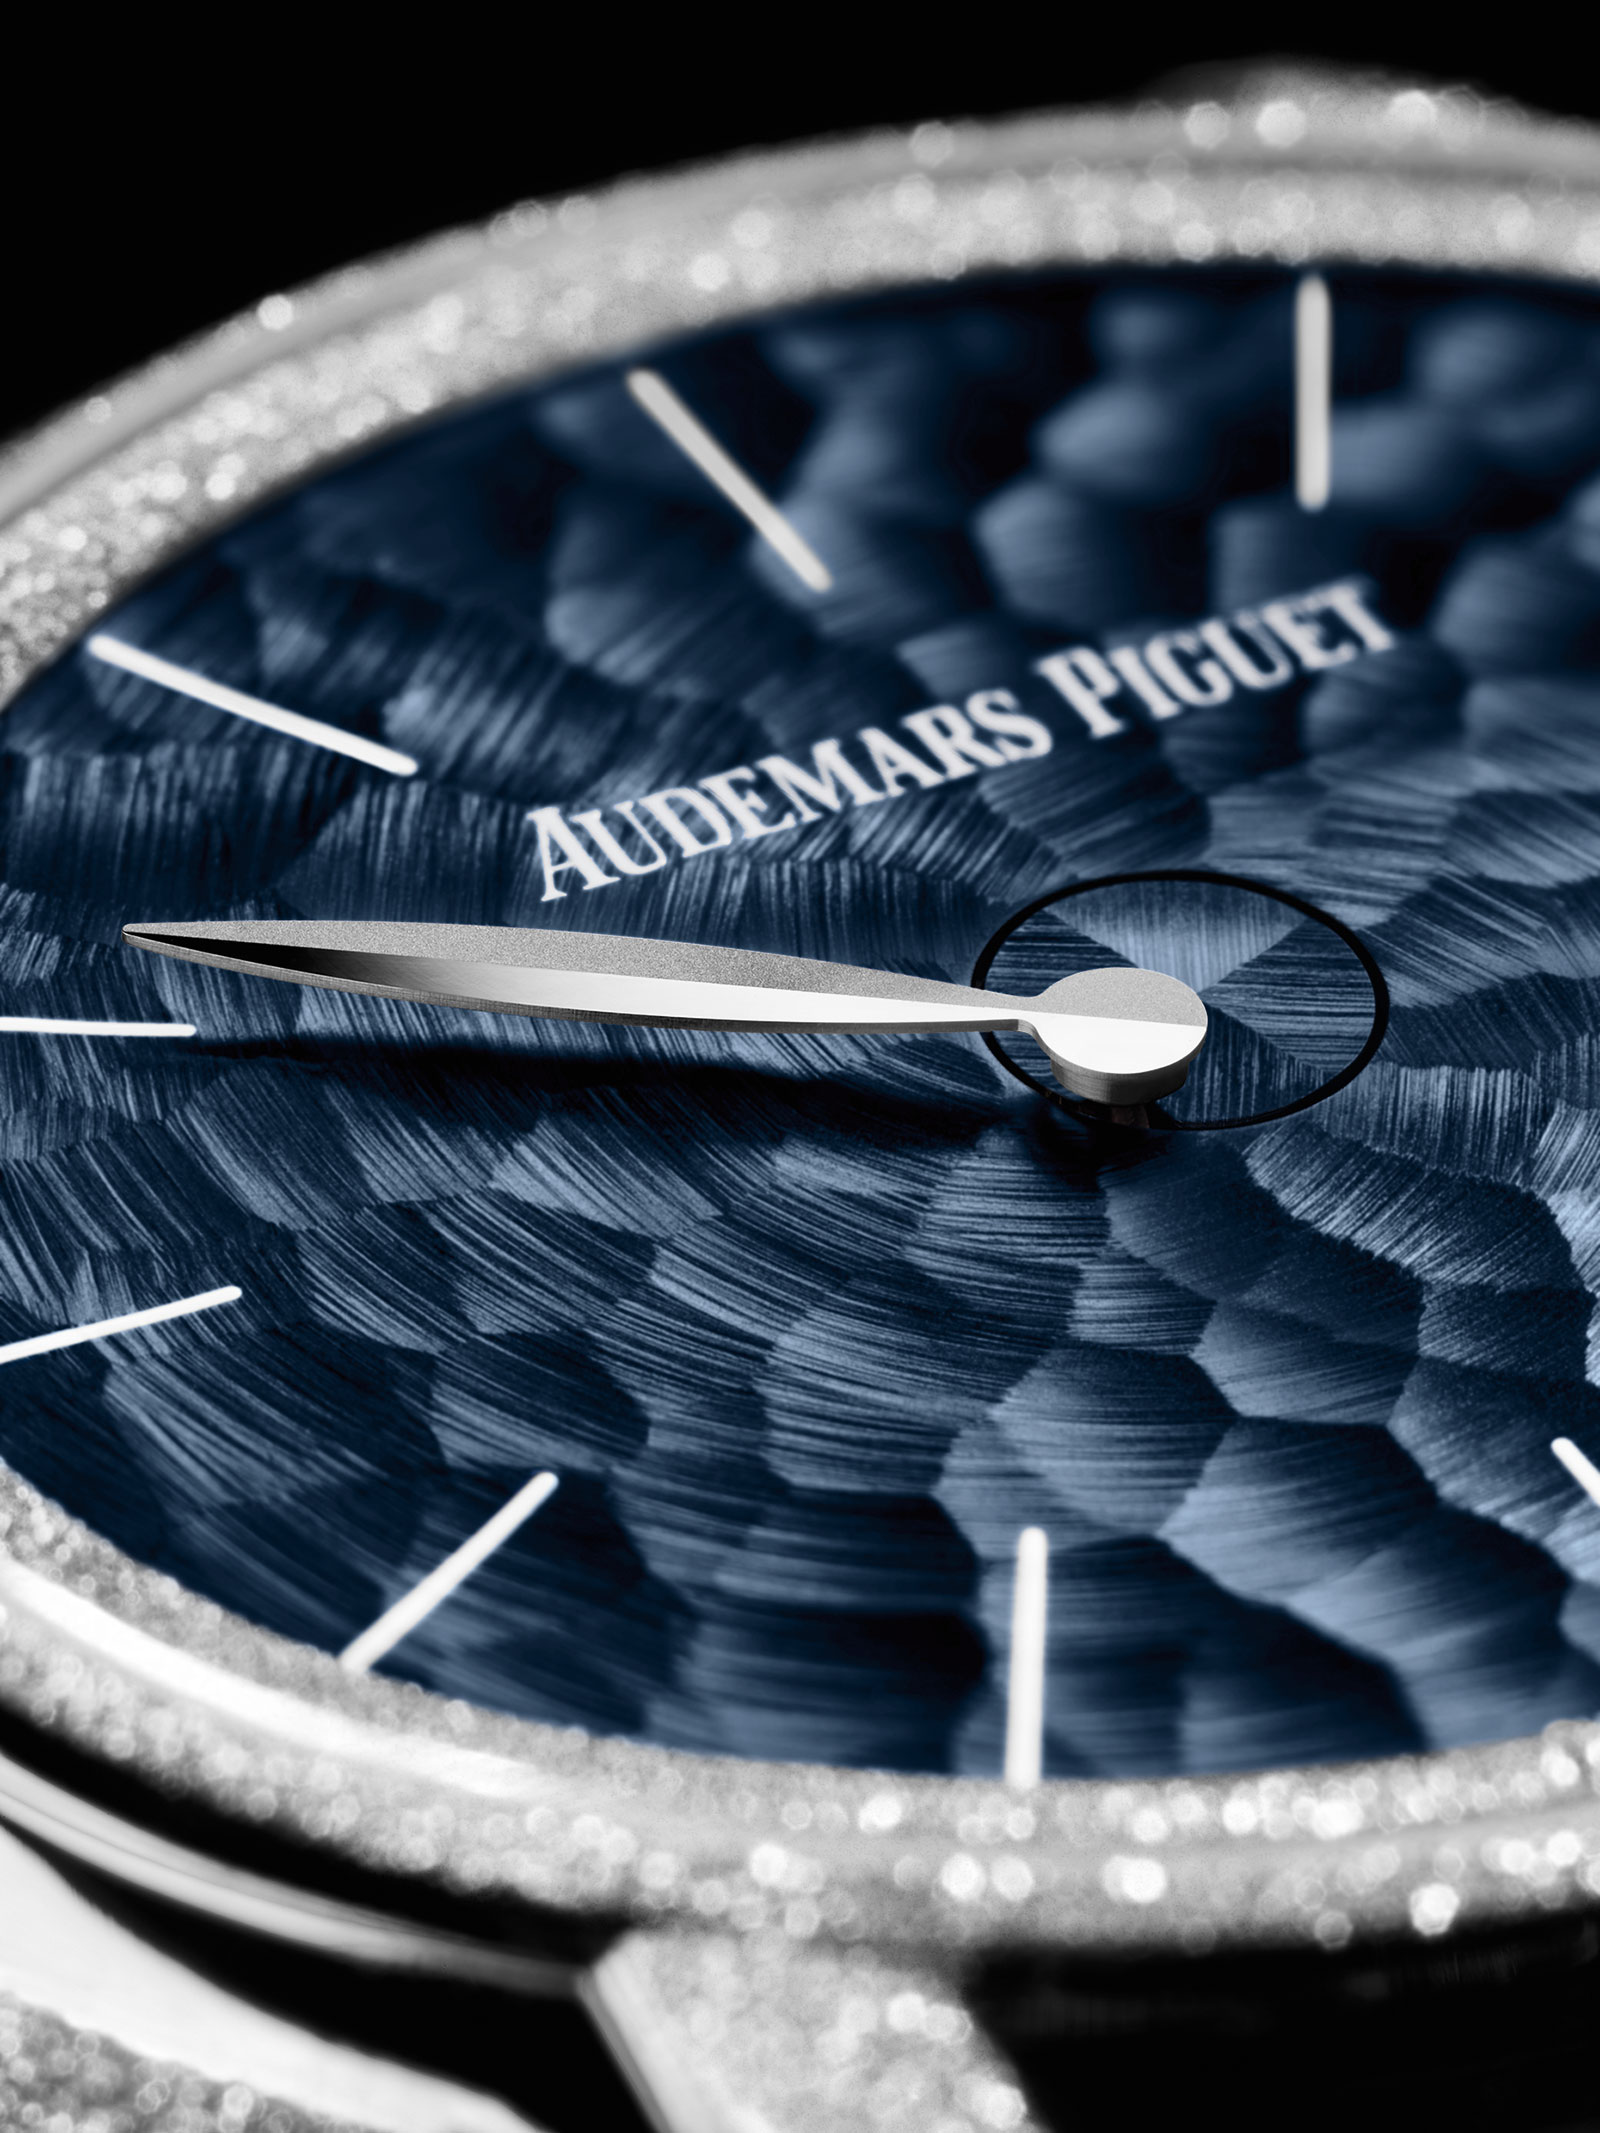 audemars piguet Millenary Frosted Gold Philosophique 3